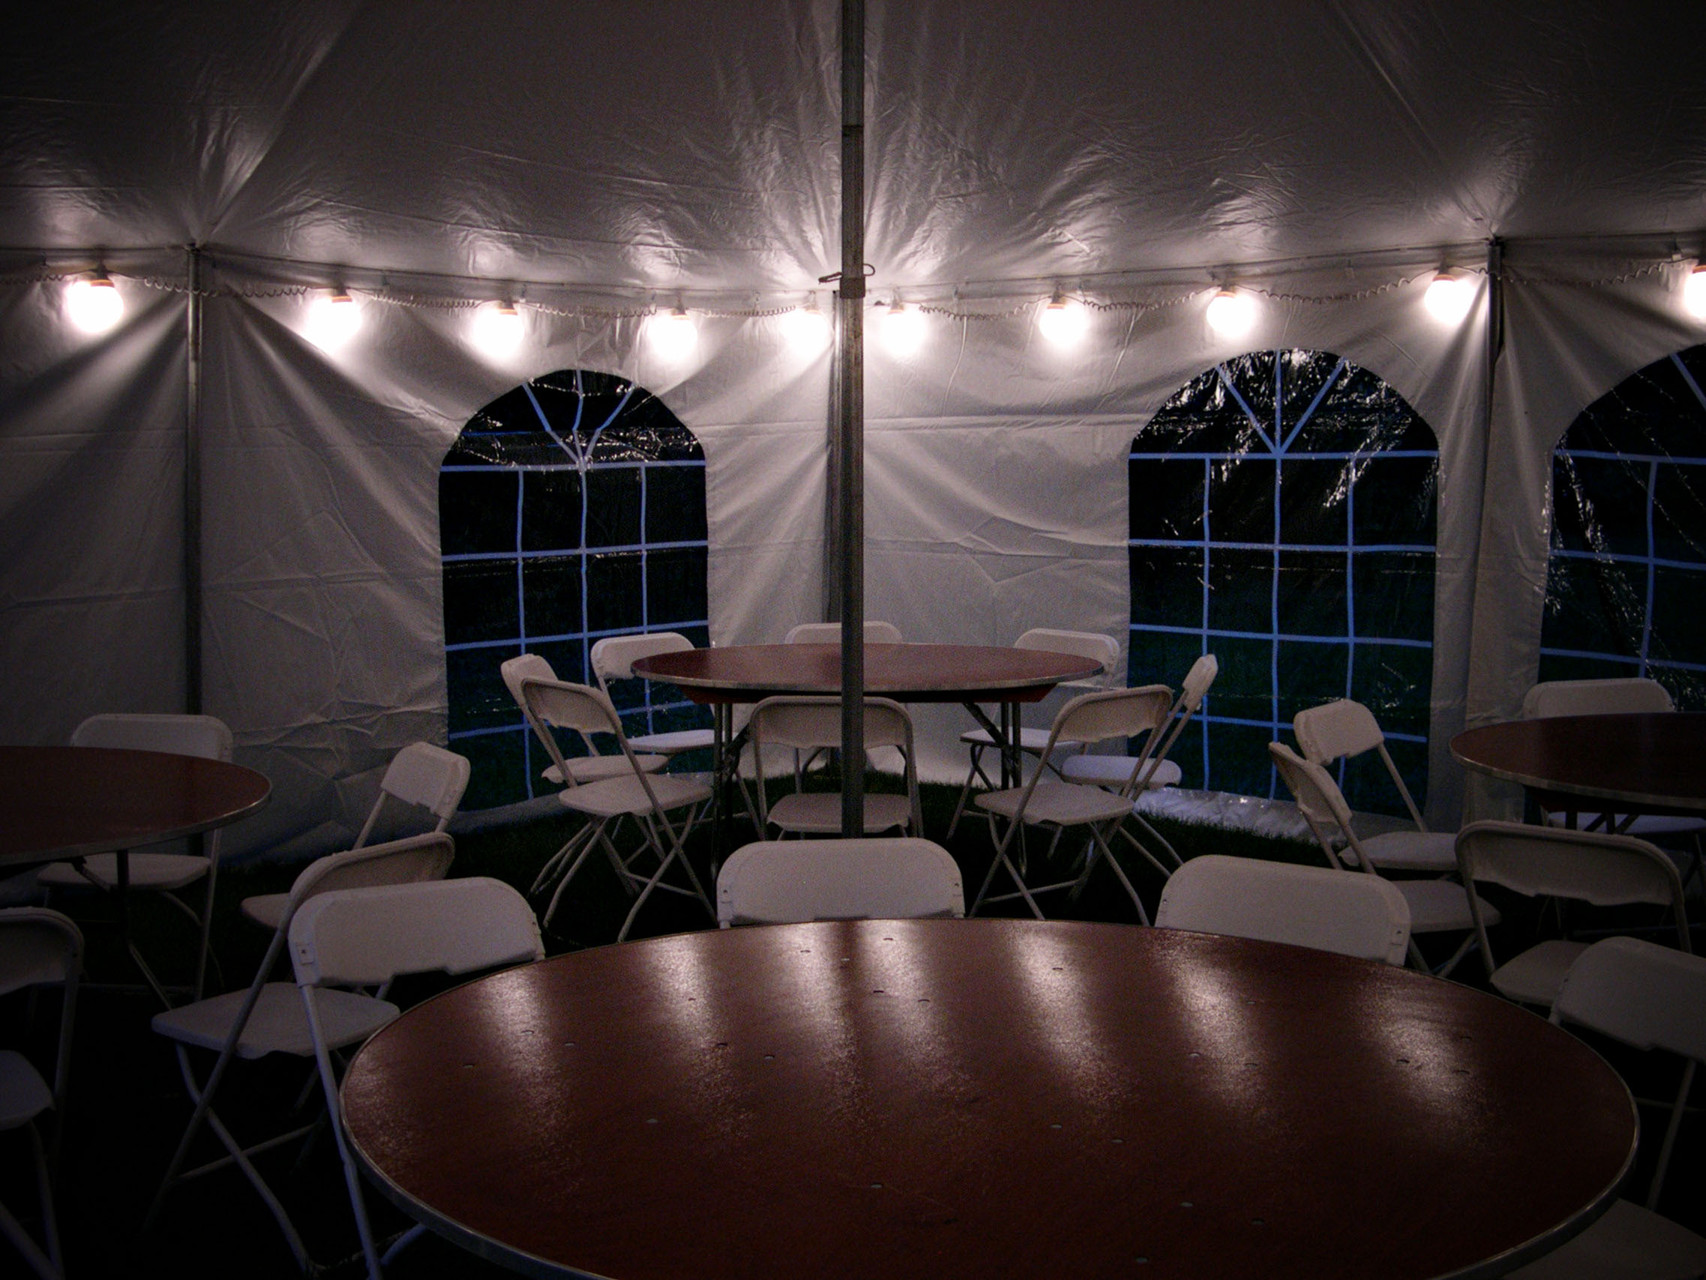 We offer globe string lights which go around the perimeter of the tent